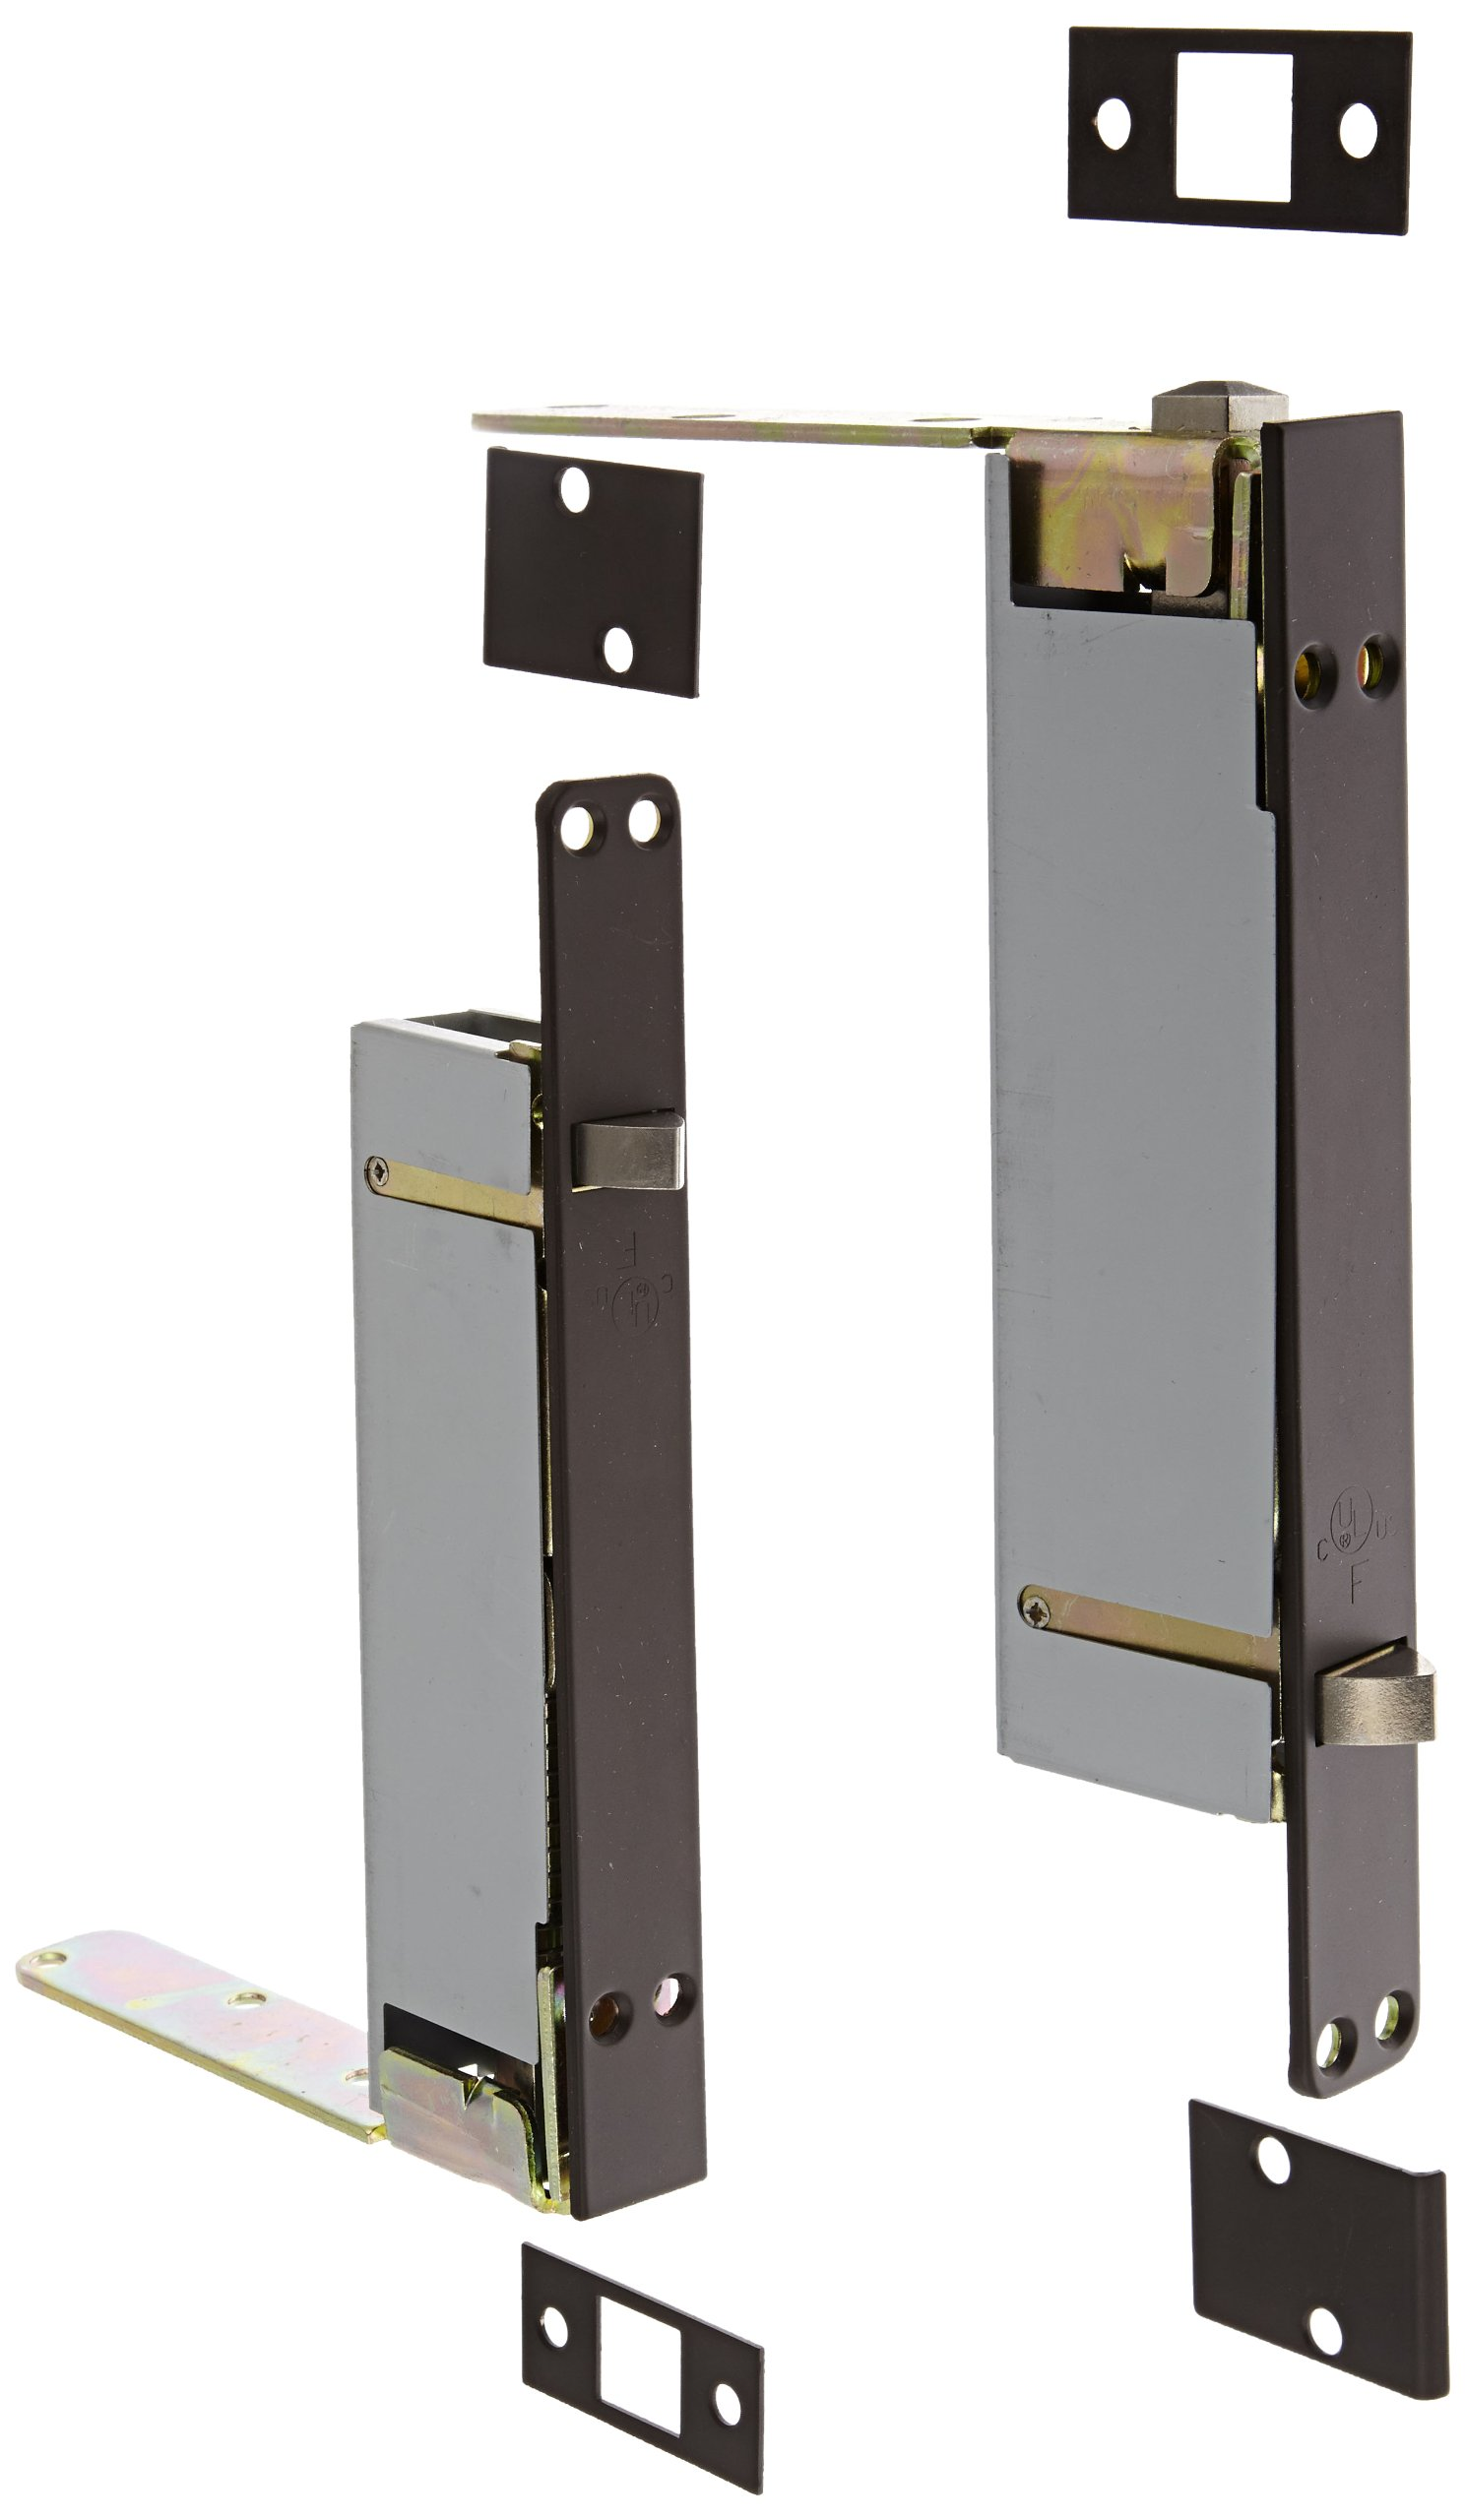 """Rockwood 2942.10B Automatic Flush Bolt Set for Wood or Plastic Covered Composite Type Fire Doors, 1"""" Width x 8-1/2"""" Length, Bronze Satin Oxidized Oil Rubbed Finish"""